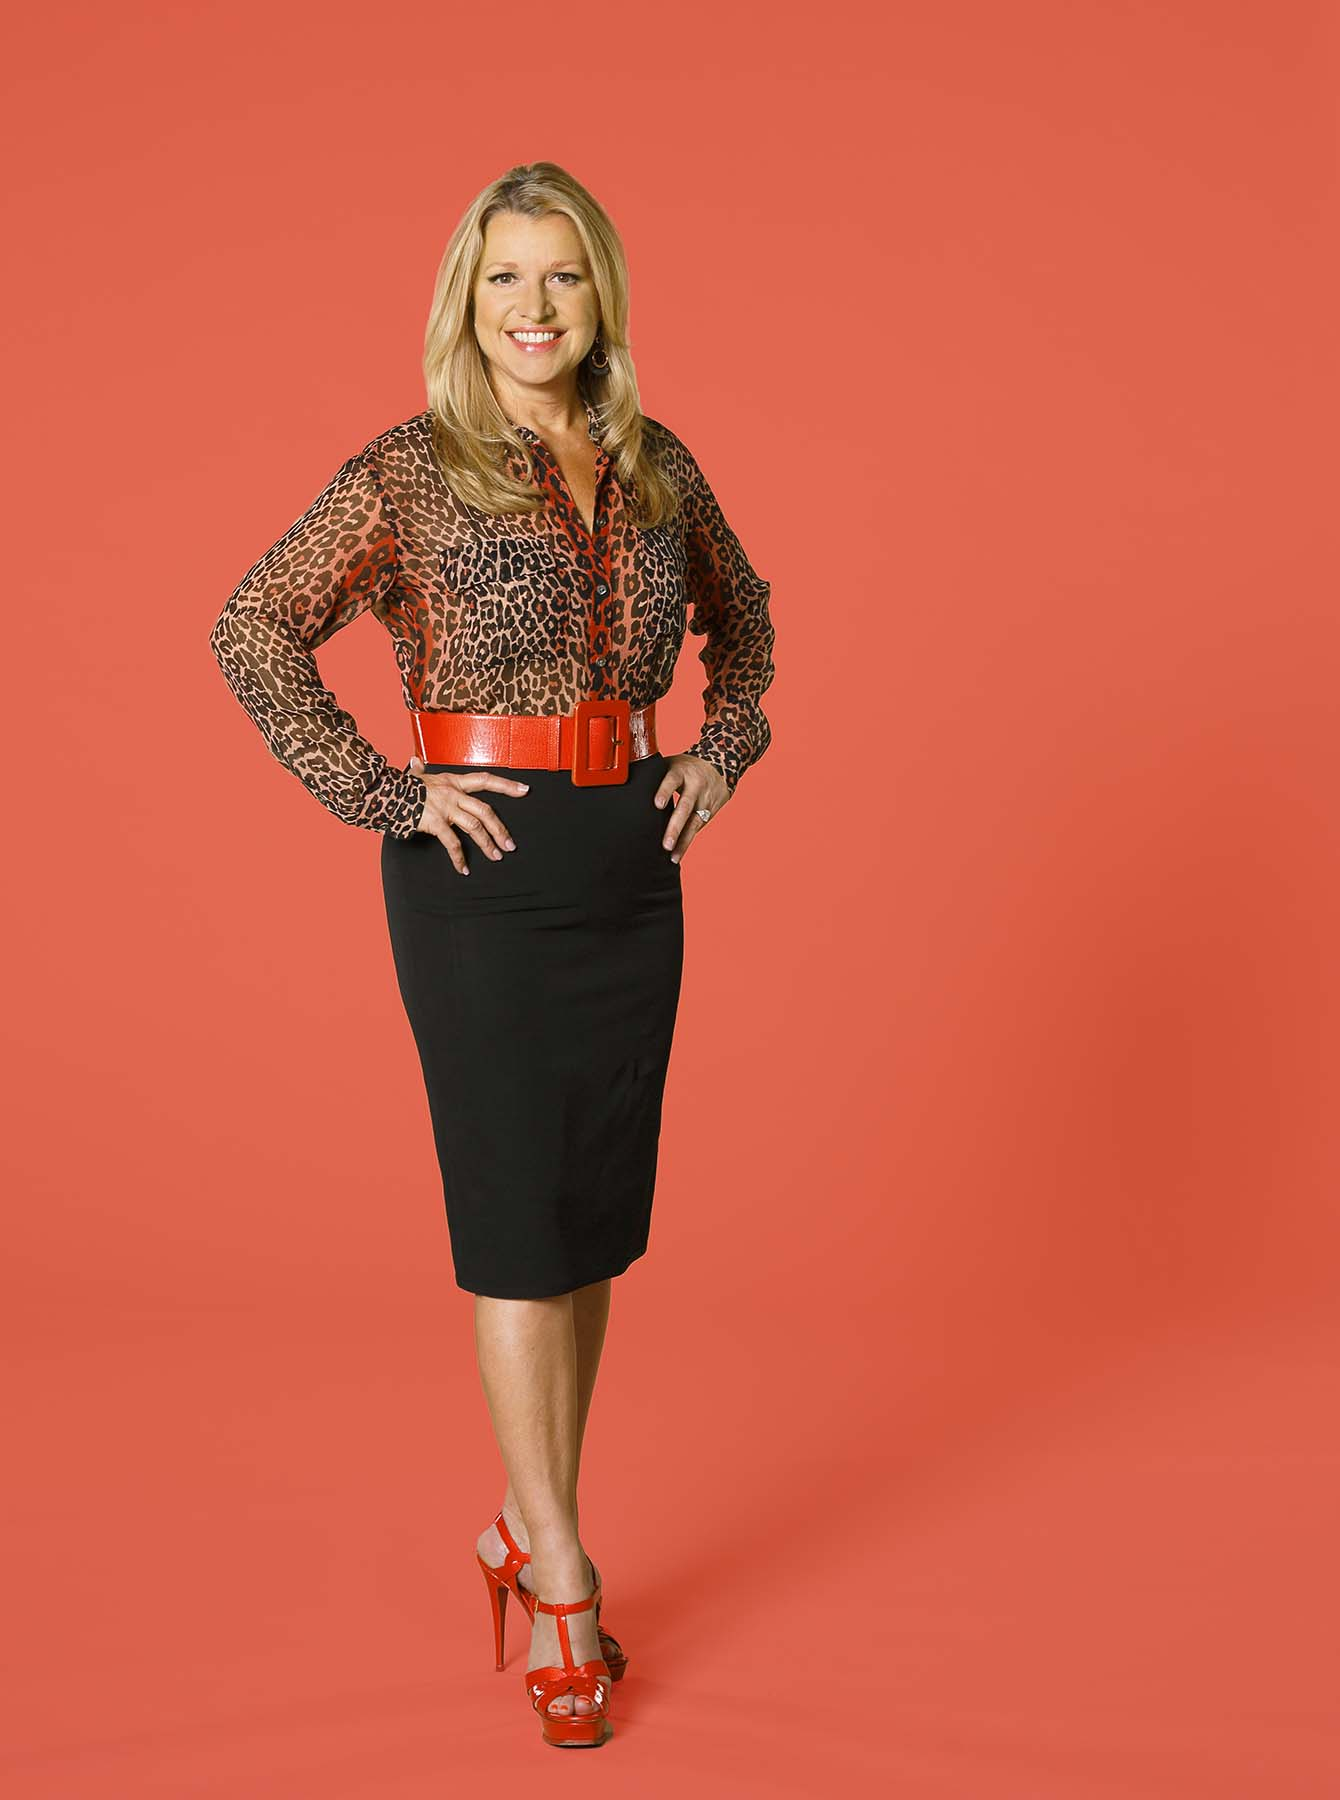 mindy grossman weight watchers bob croslin florida portrait photographer